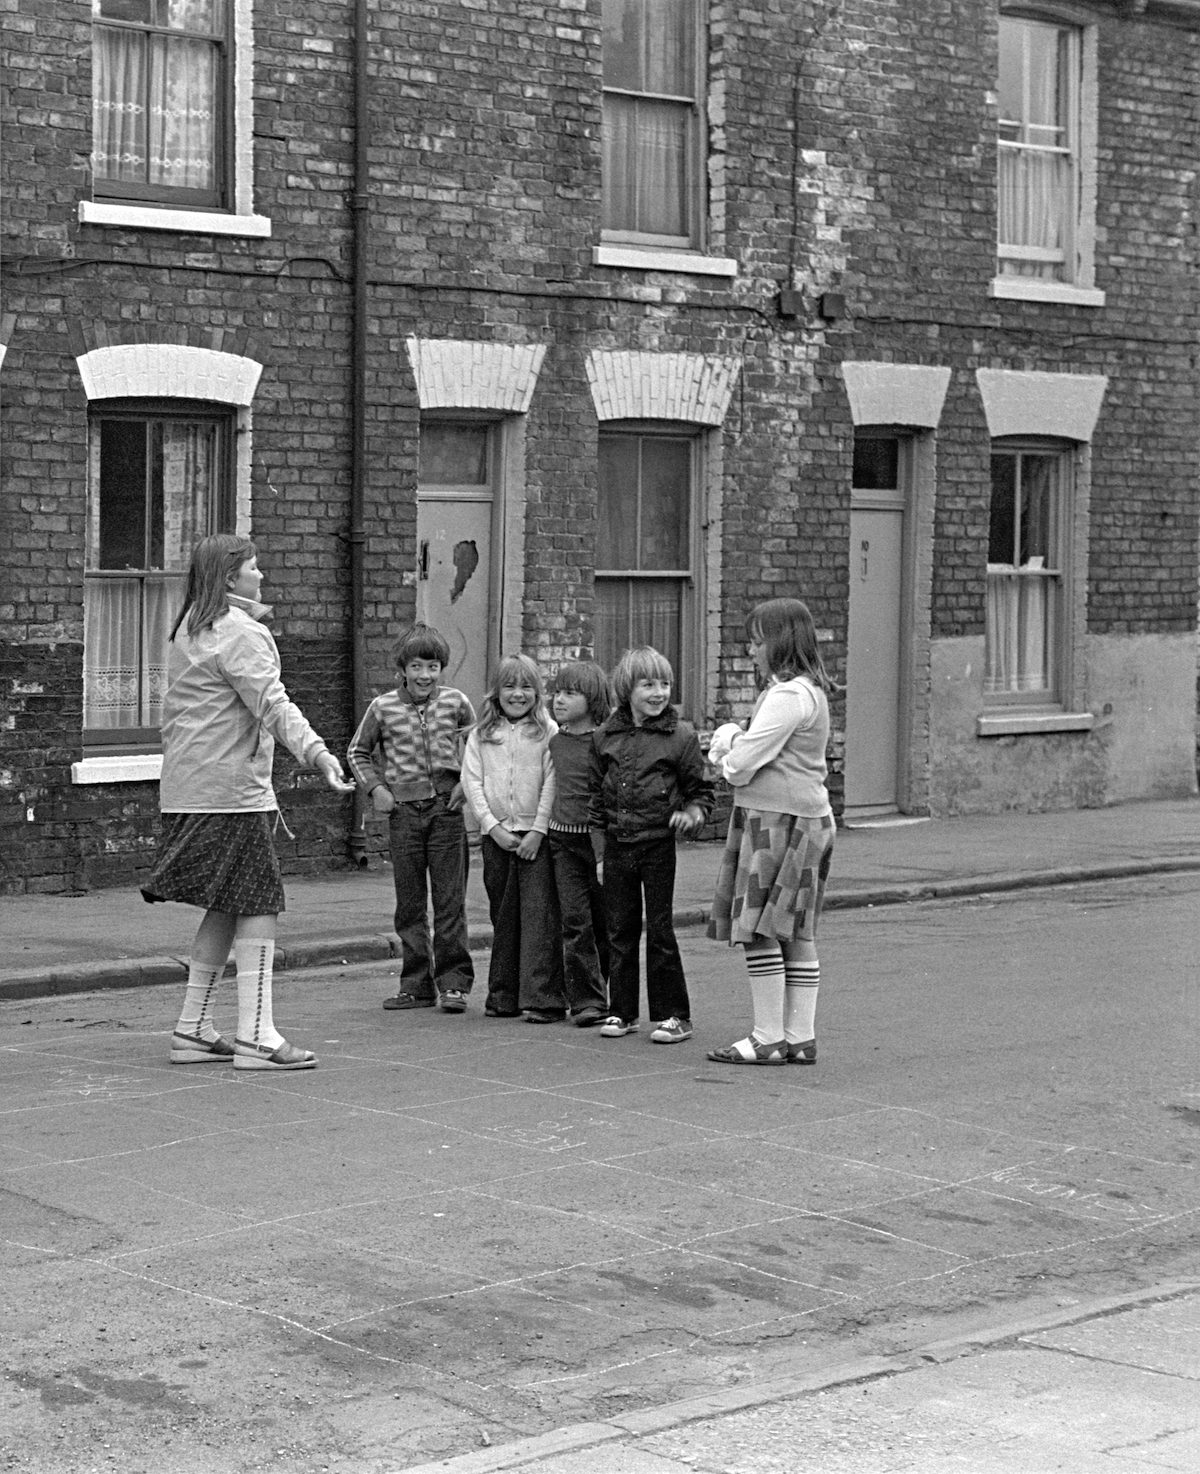 Children's Games, Street games, Walton St area, Hull, 1979